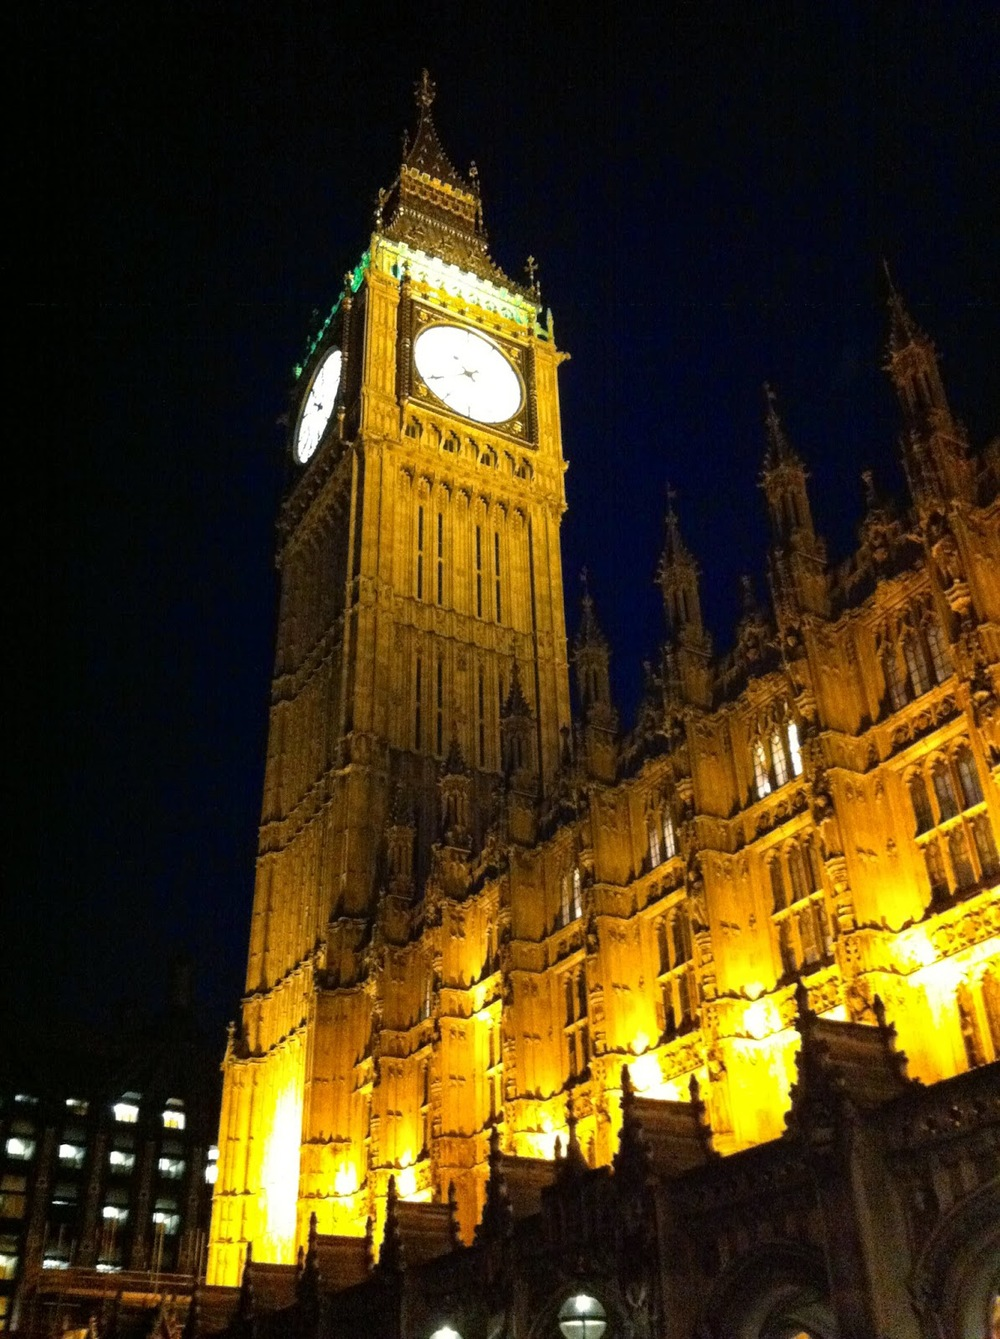 House of Commons and Big Ben at 11pm